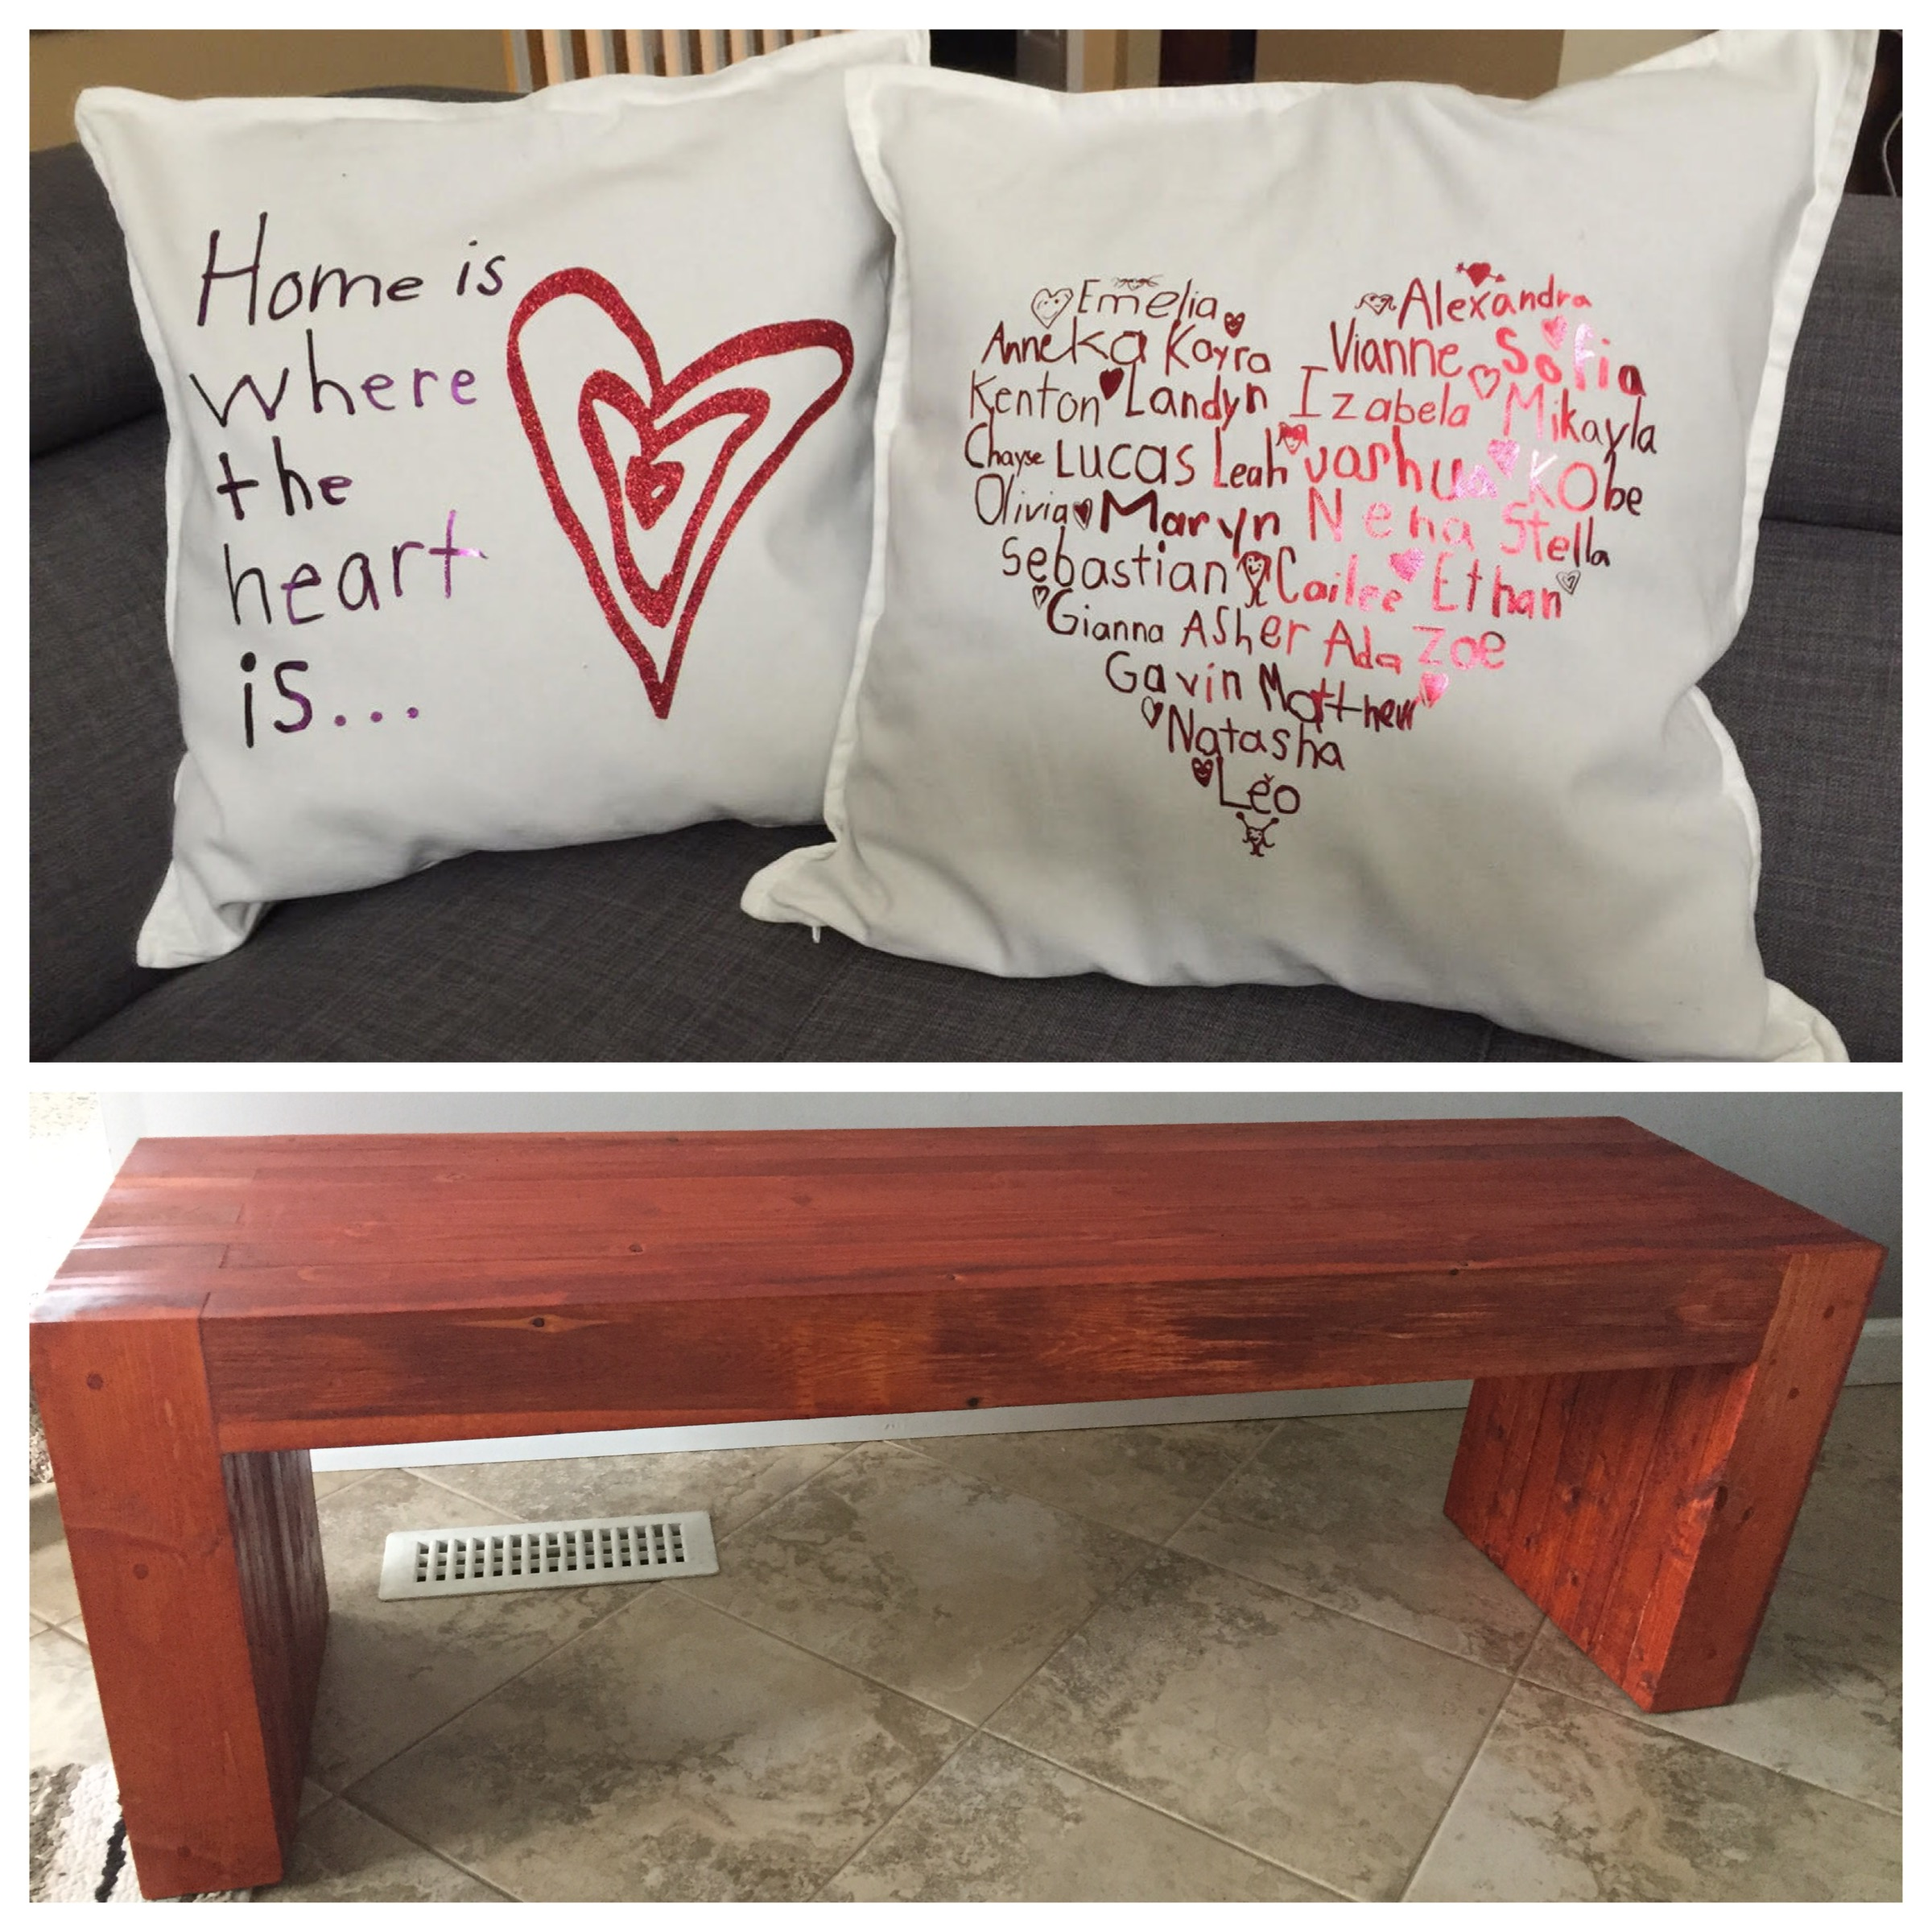 In addition to these beautiful pillows, the Grade 1 class craft includes a beautiful handmade bench. Thanks to Deanna Maceda Silva, Mary Gene Mariano and Morena Vilio for coordinating the pillow design and Clarissa and Glenn Gallagher for creating the bench.  Opening Bid: $50 Bid Increments: $10 Class Code:  Name, G1-(place bid)